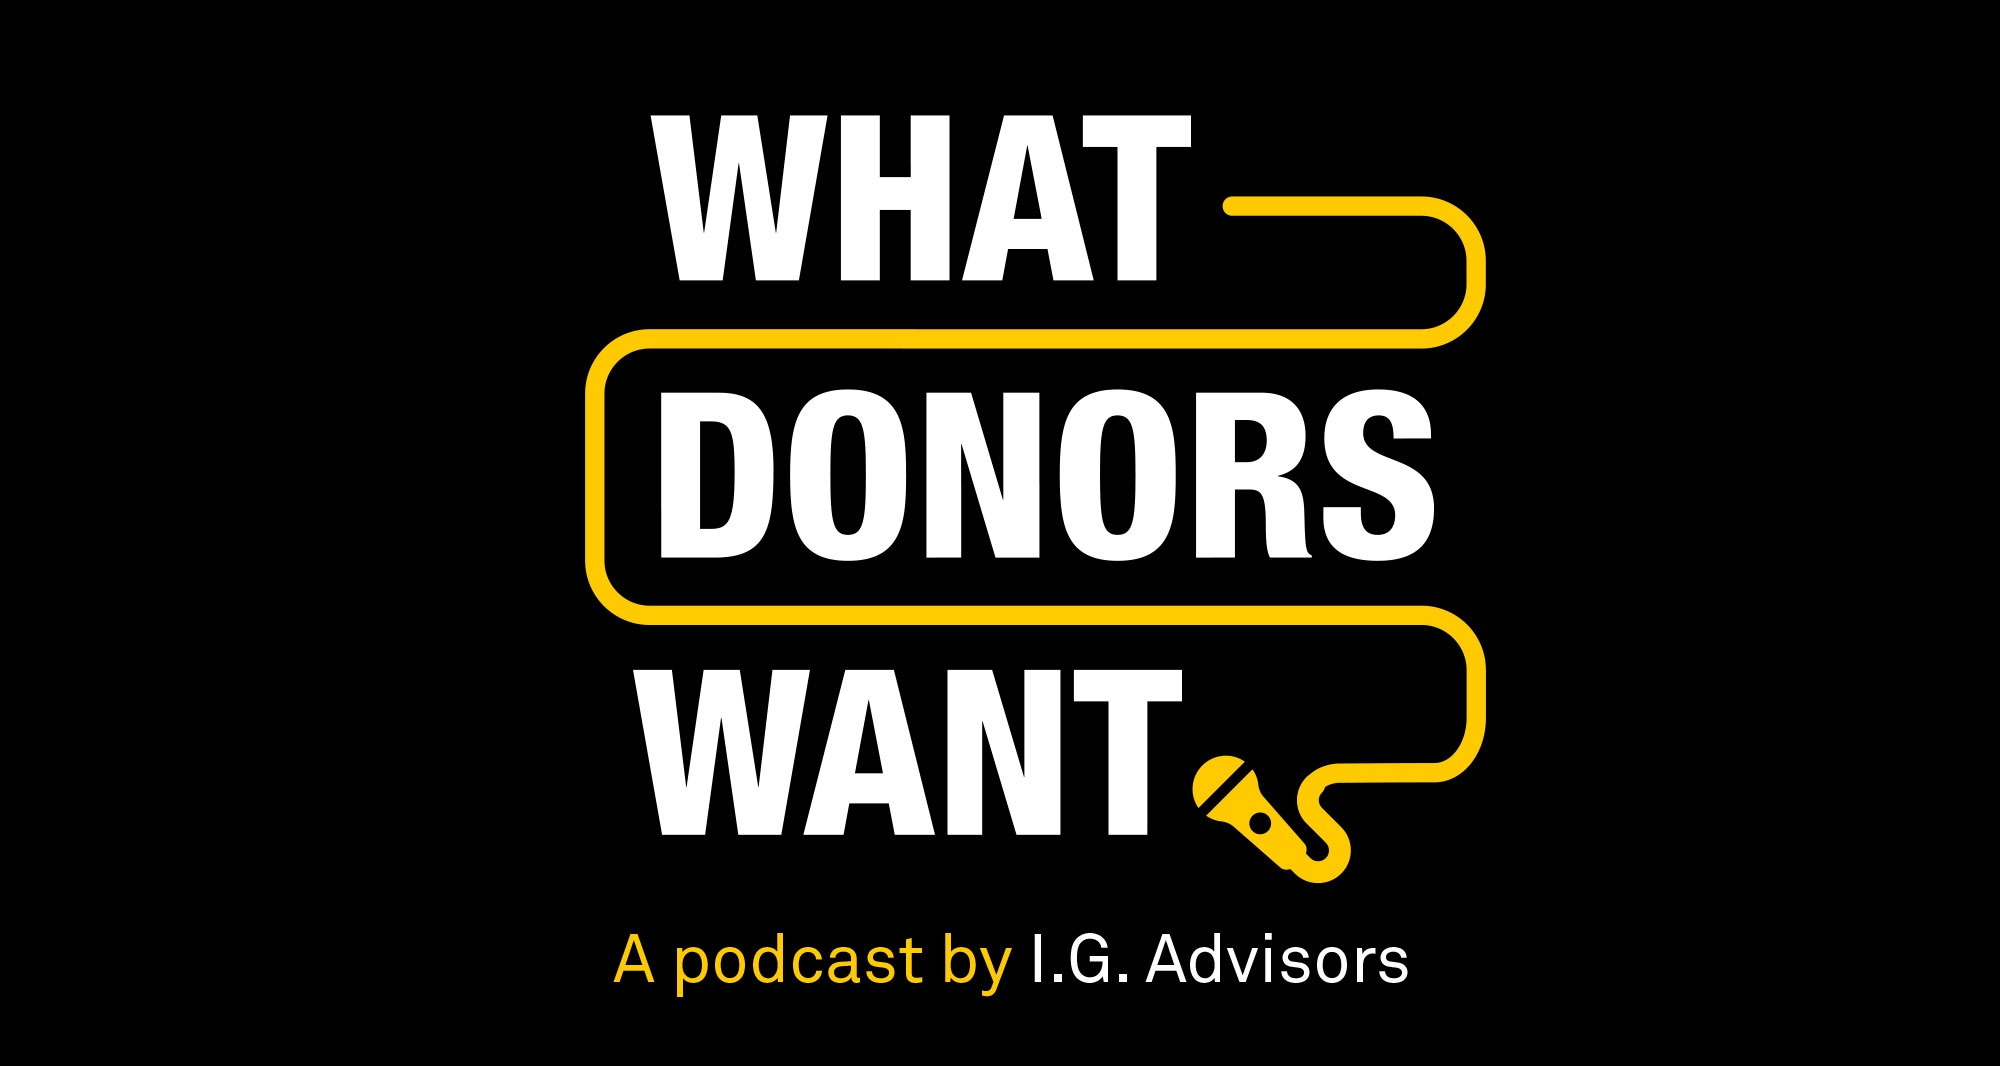 What Donors Want podcast logo